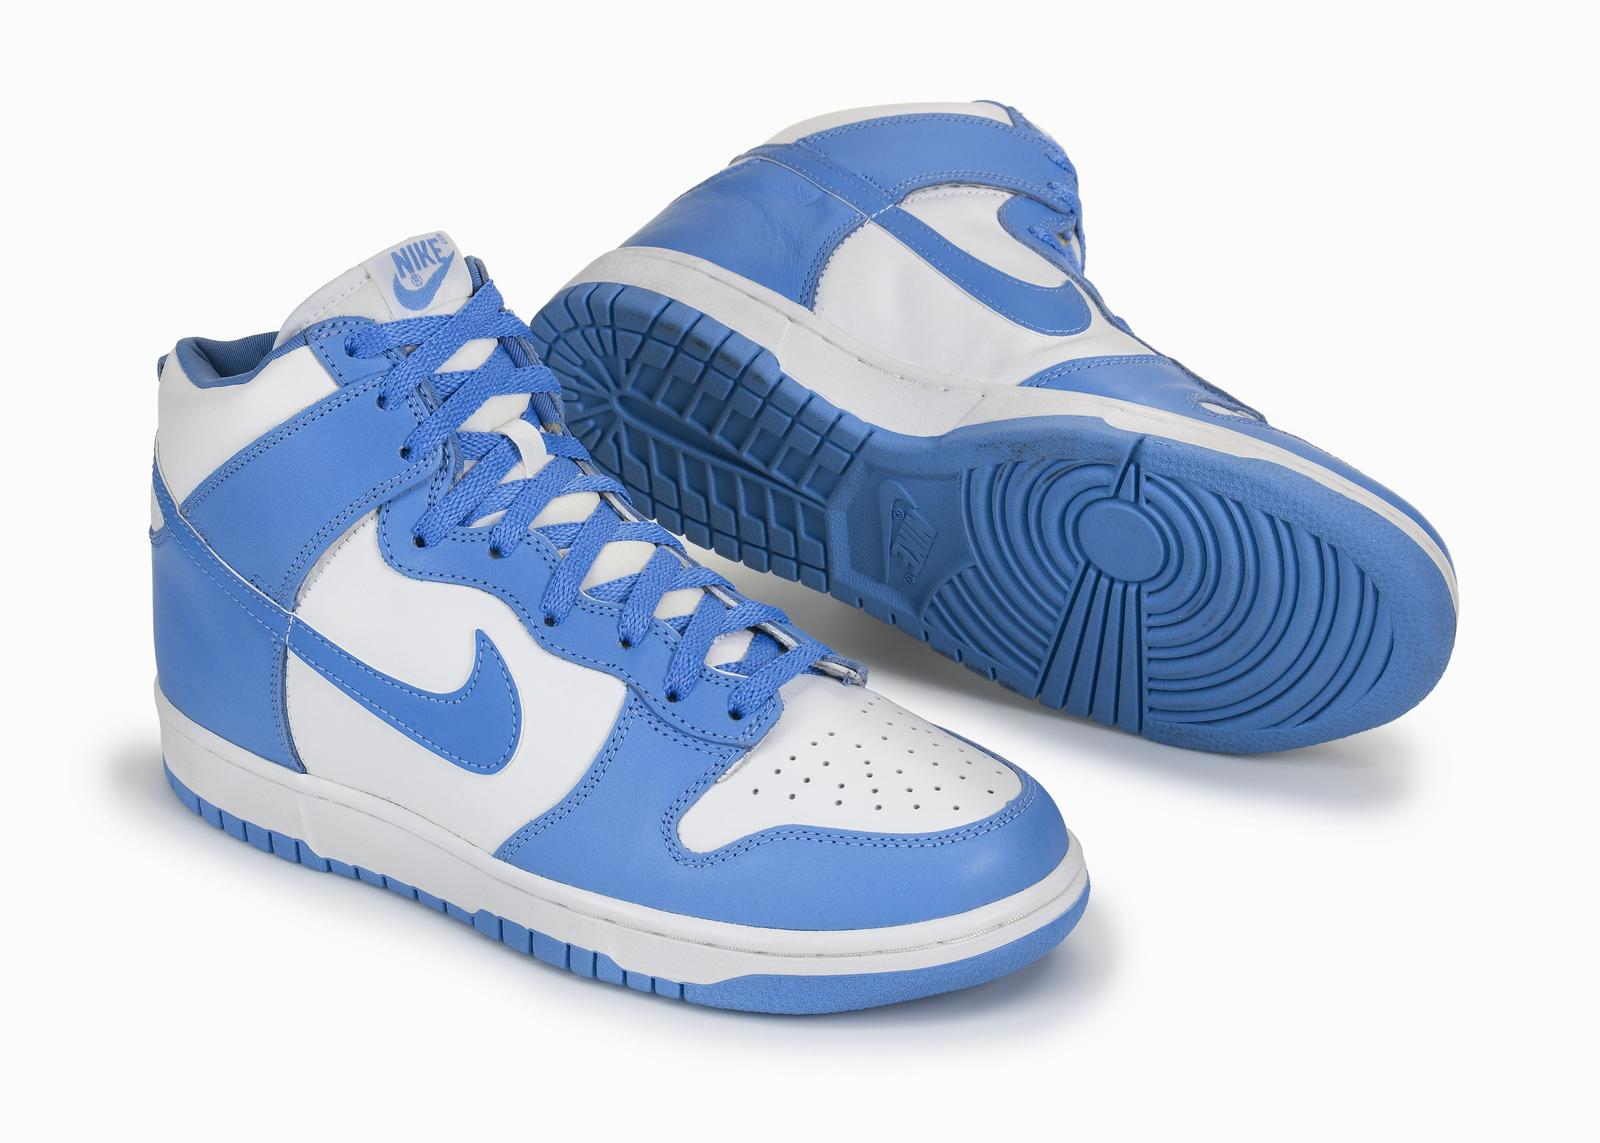 06d0a3ec3c9ea Inside Access  The Nike Dunk Celebrates 30 Years as an Icon - Nike News